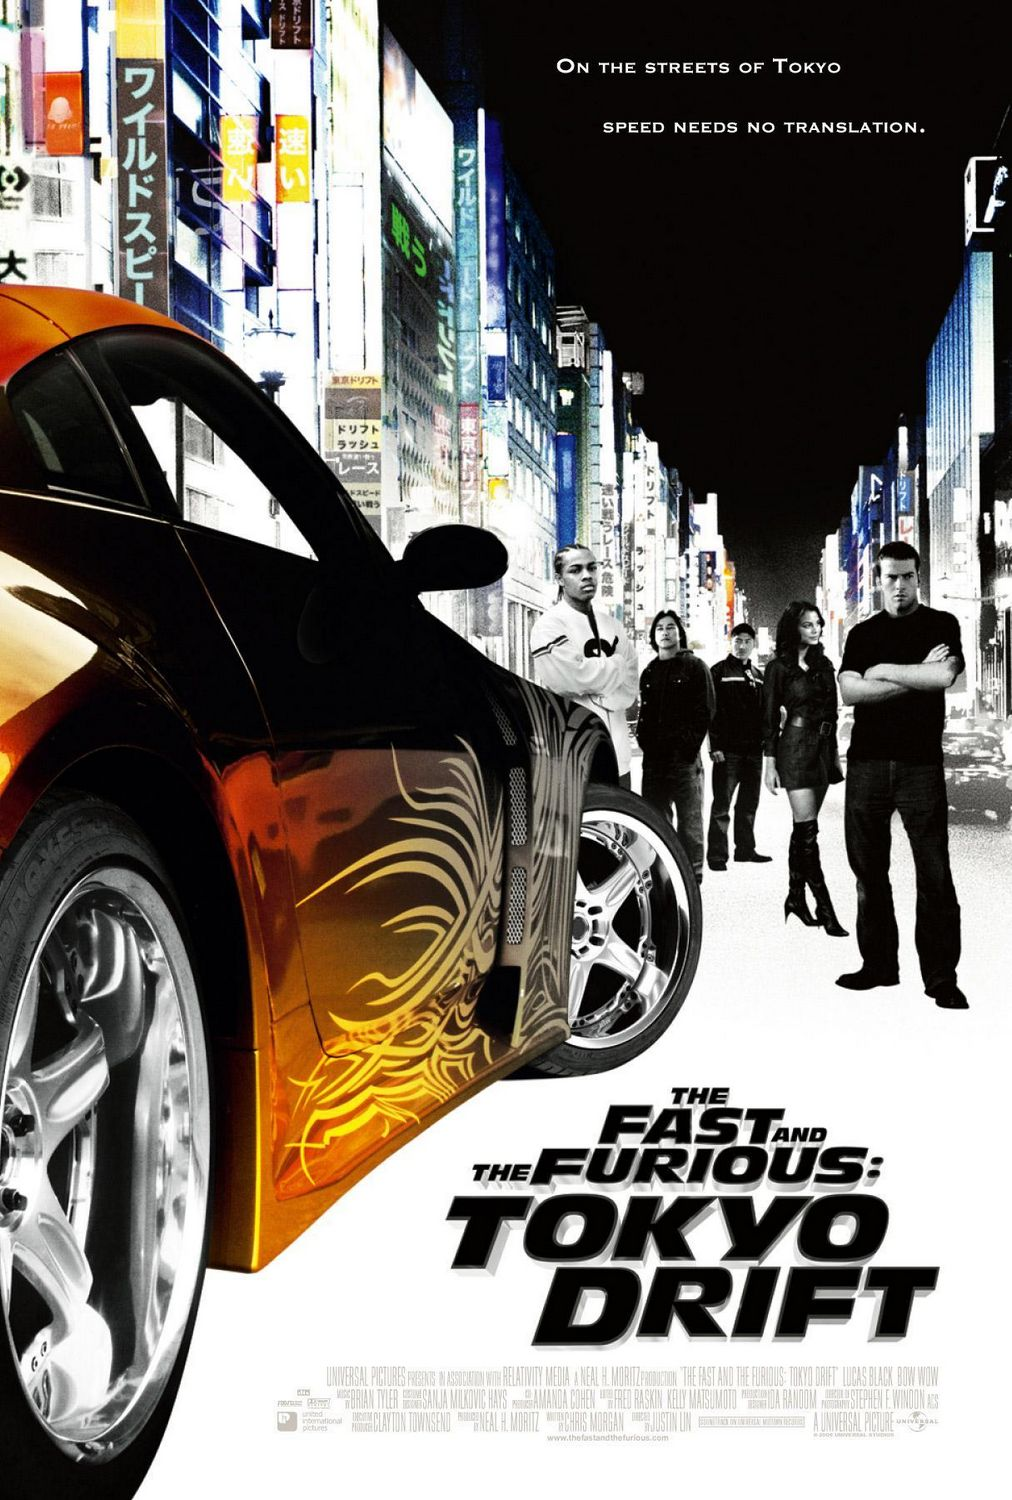 S01E09: The Fast and the Furious: Tokyo Drift